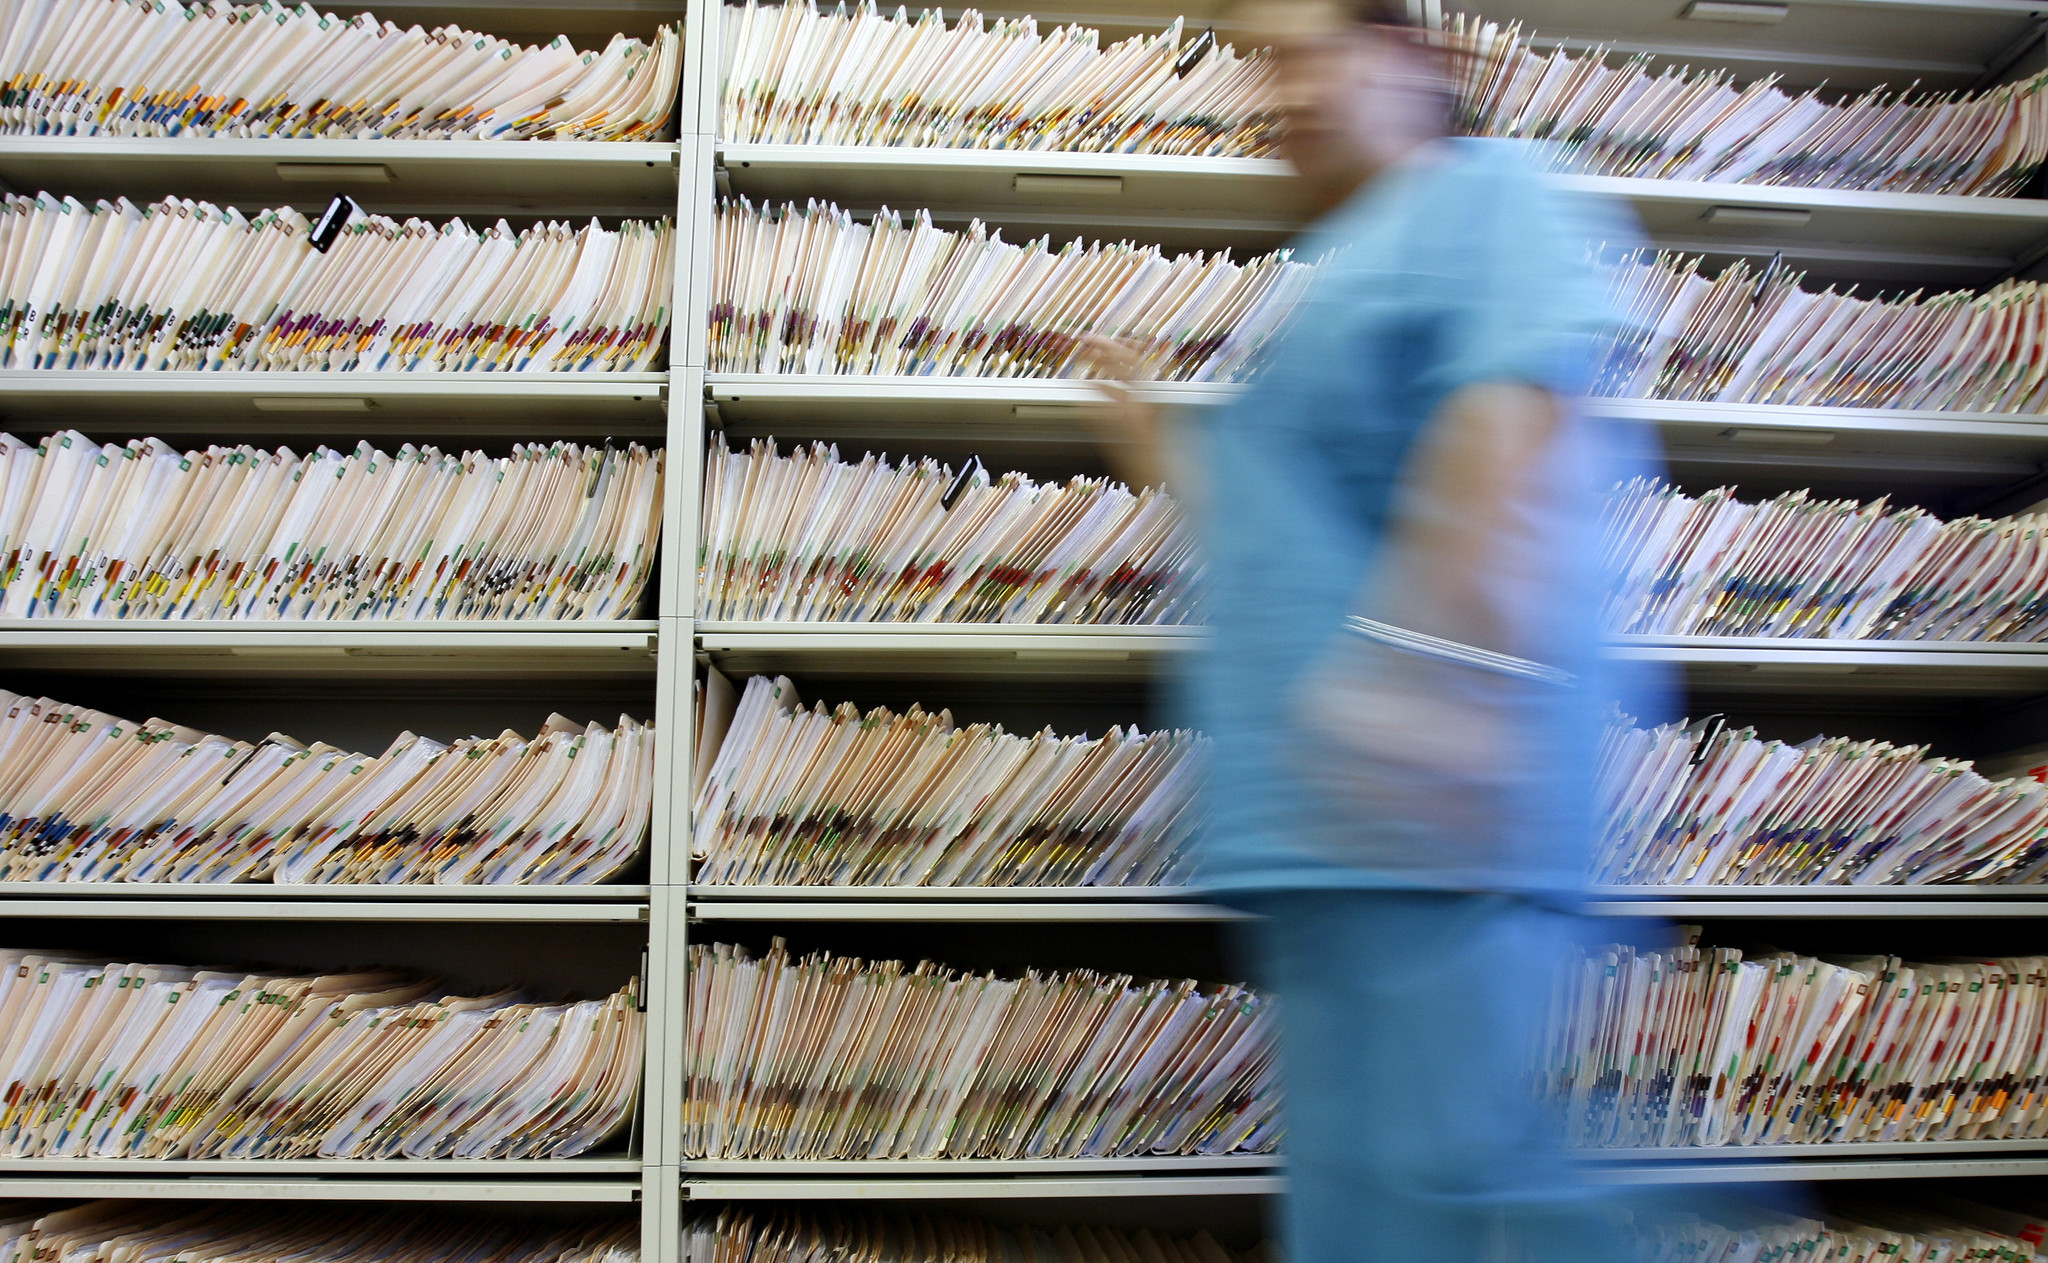 Retention of Paper Medical Records After Converting to Electronic Health Records